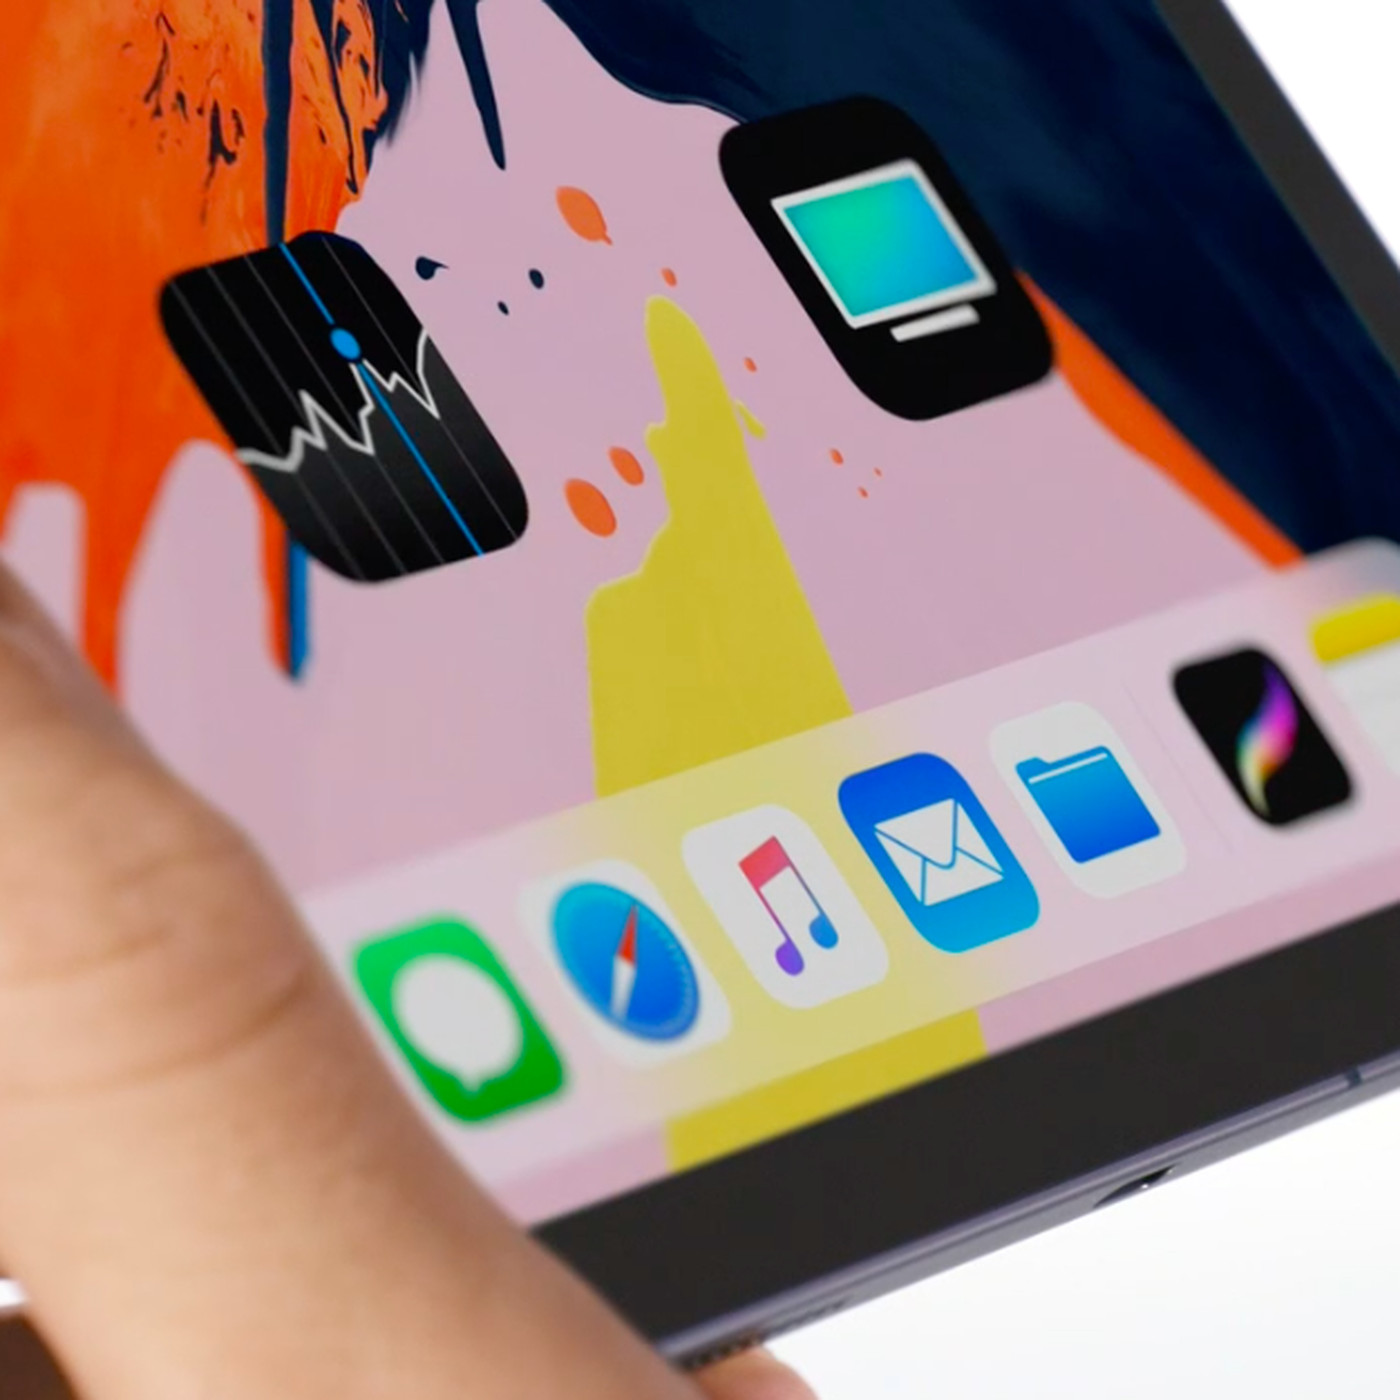 Apple's new iPad Pro doesn't have a headphone jack - The Verge